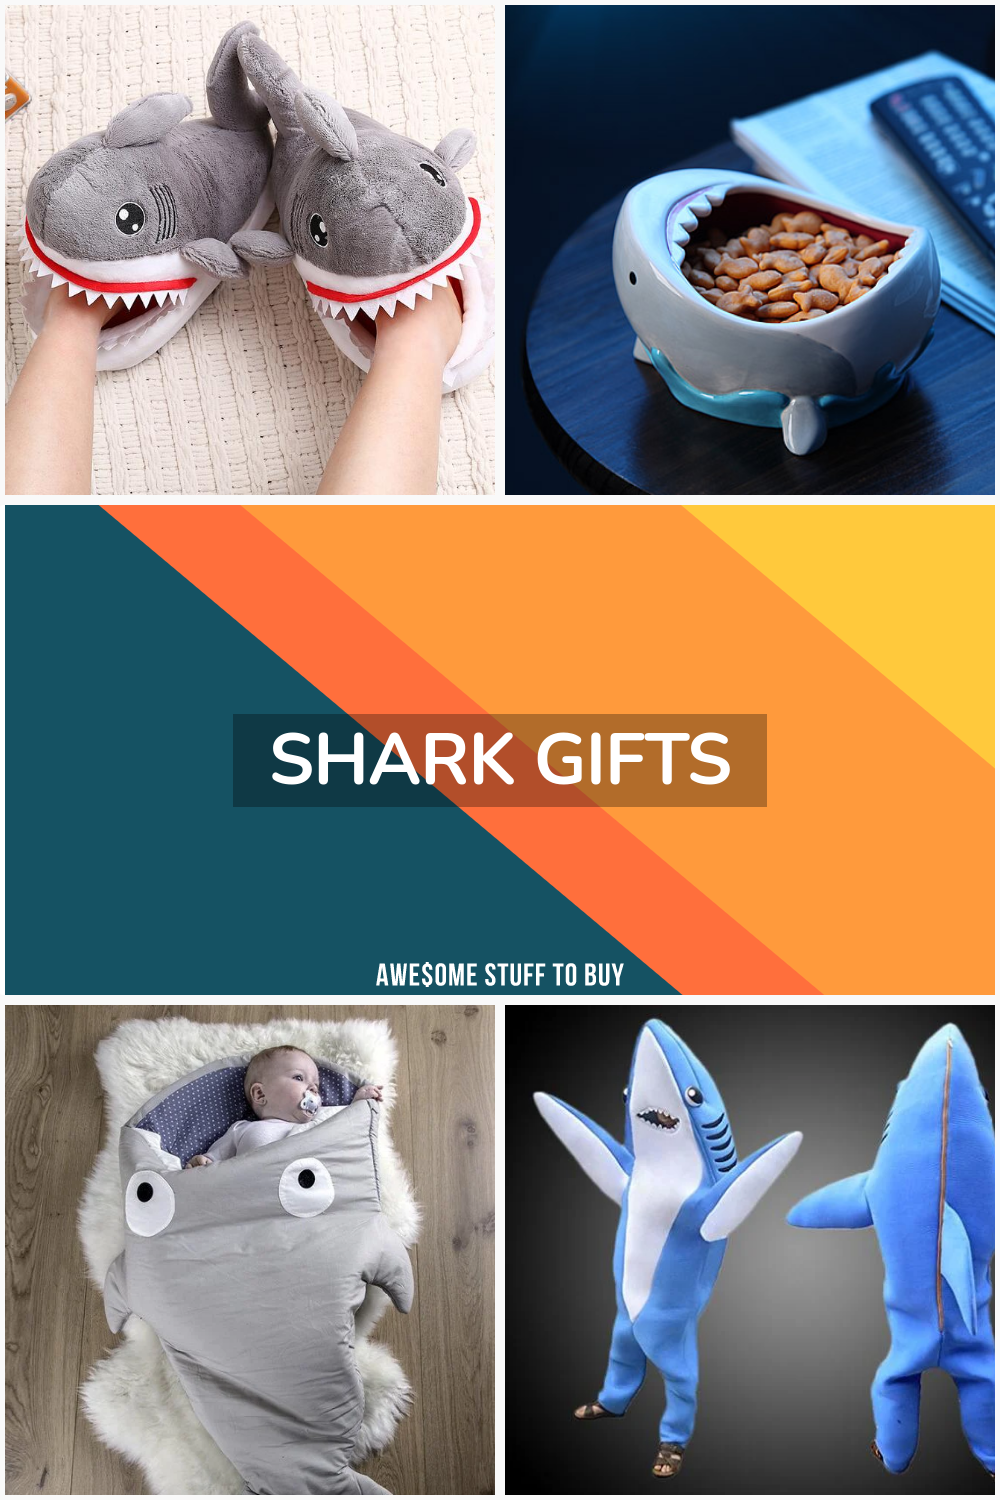 Shark Gifts // Awesome Stuff to Buy